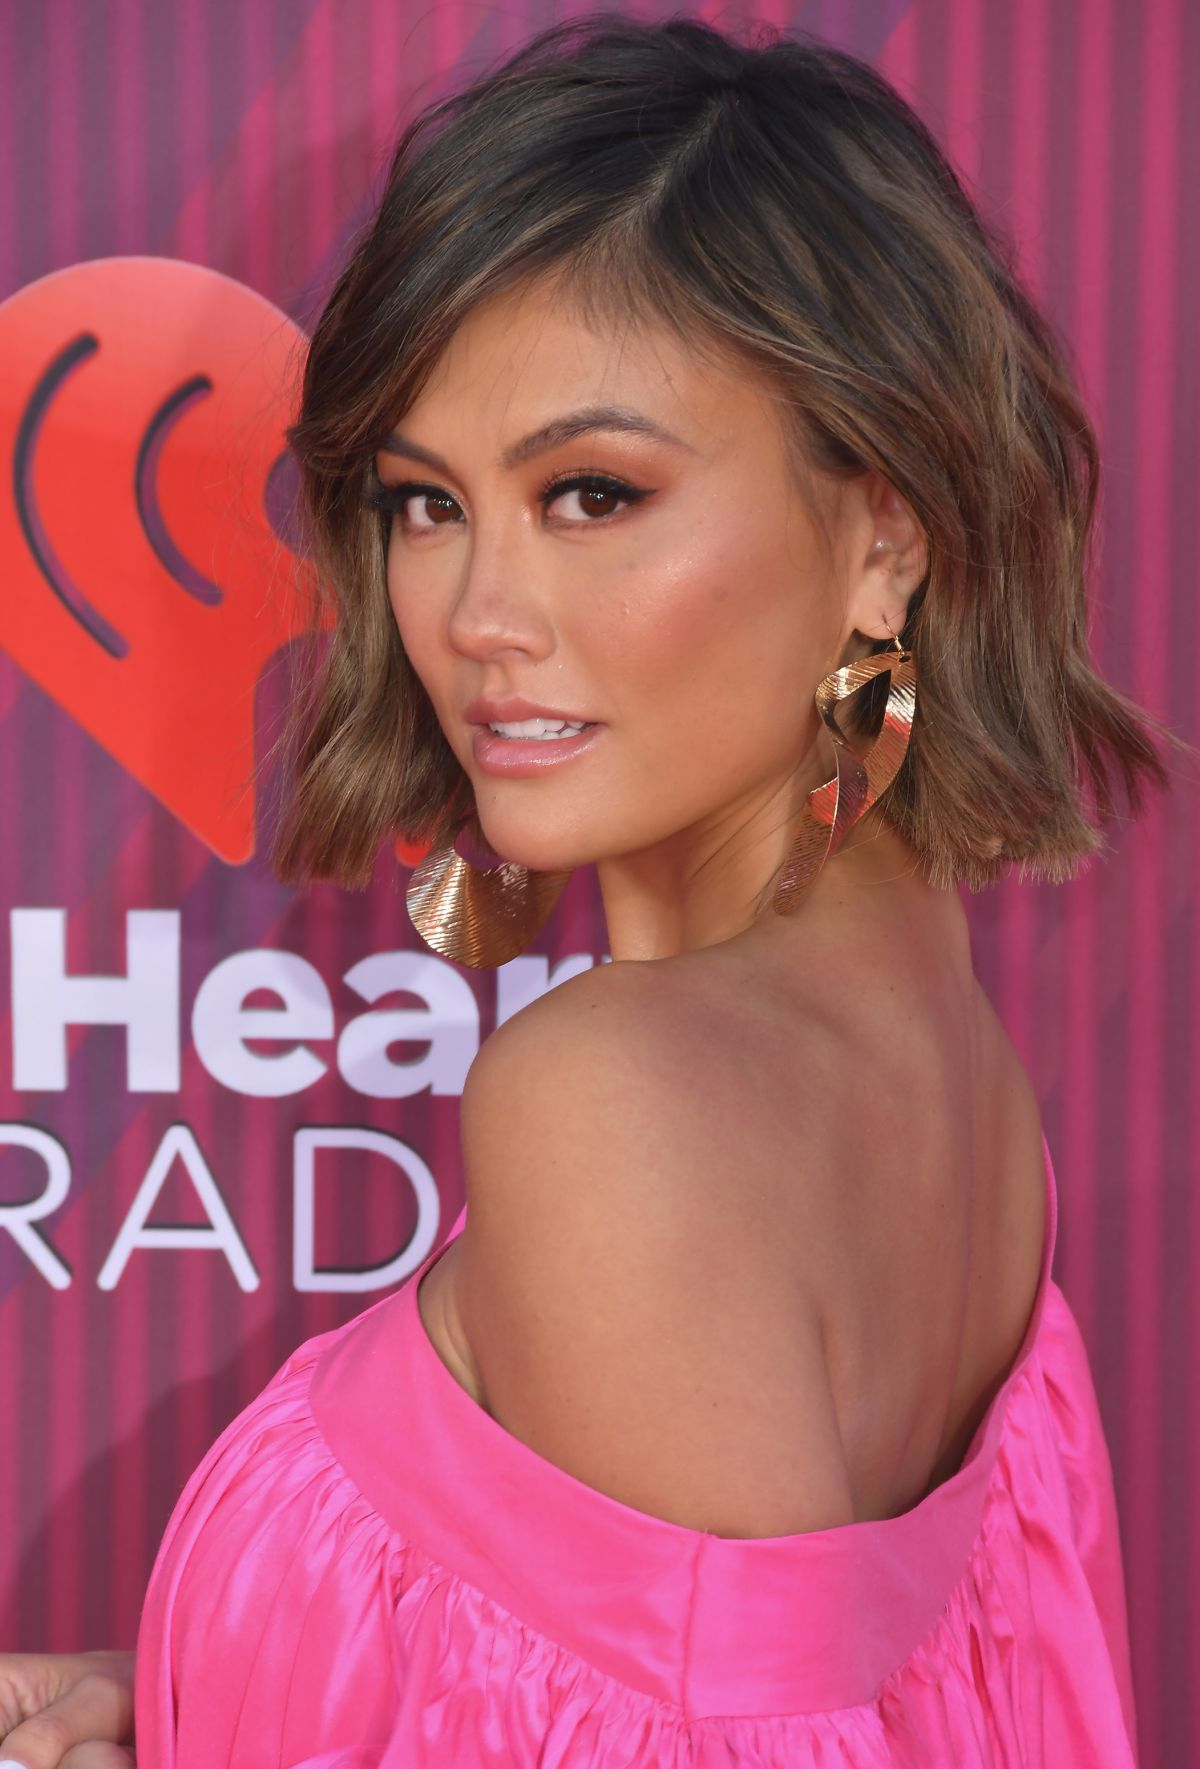 AGNEZ MO at Iheartradio Music Awards 2019 in Los Angeles ...